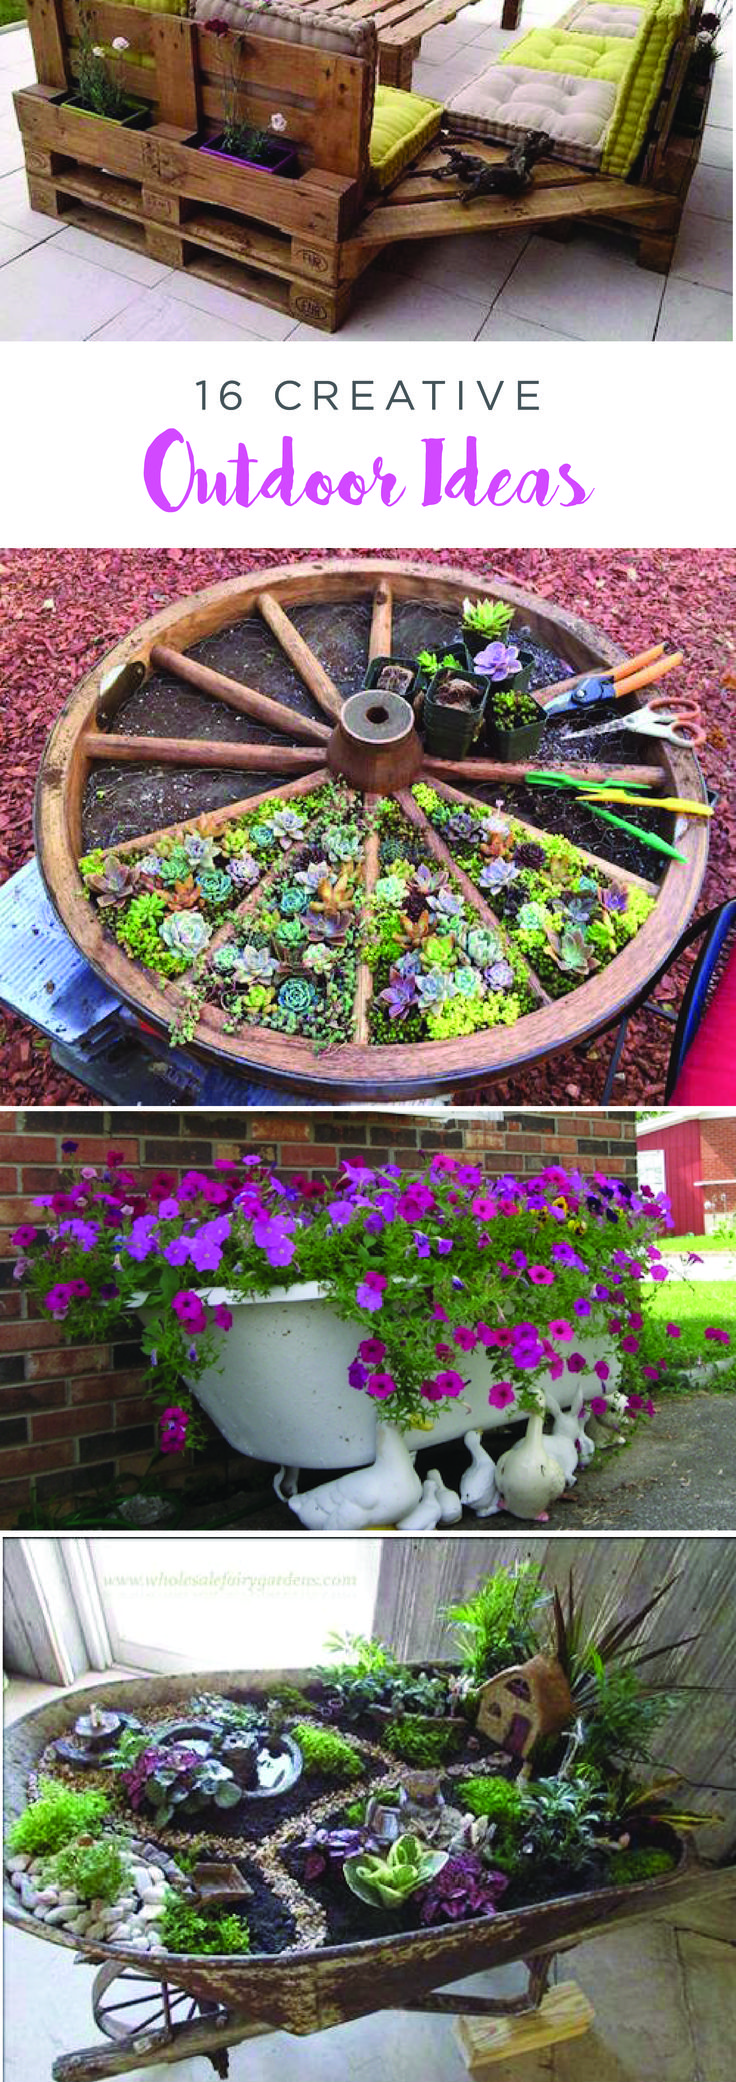 ... Makeover And Repurpose Unused Items With These Creative DIY Gardening  And Outdoor Decor Projects. From A Succulent Garden Planted In A Wagon Wheel  To A ...